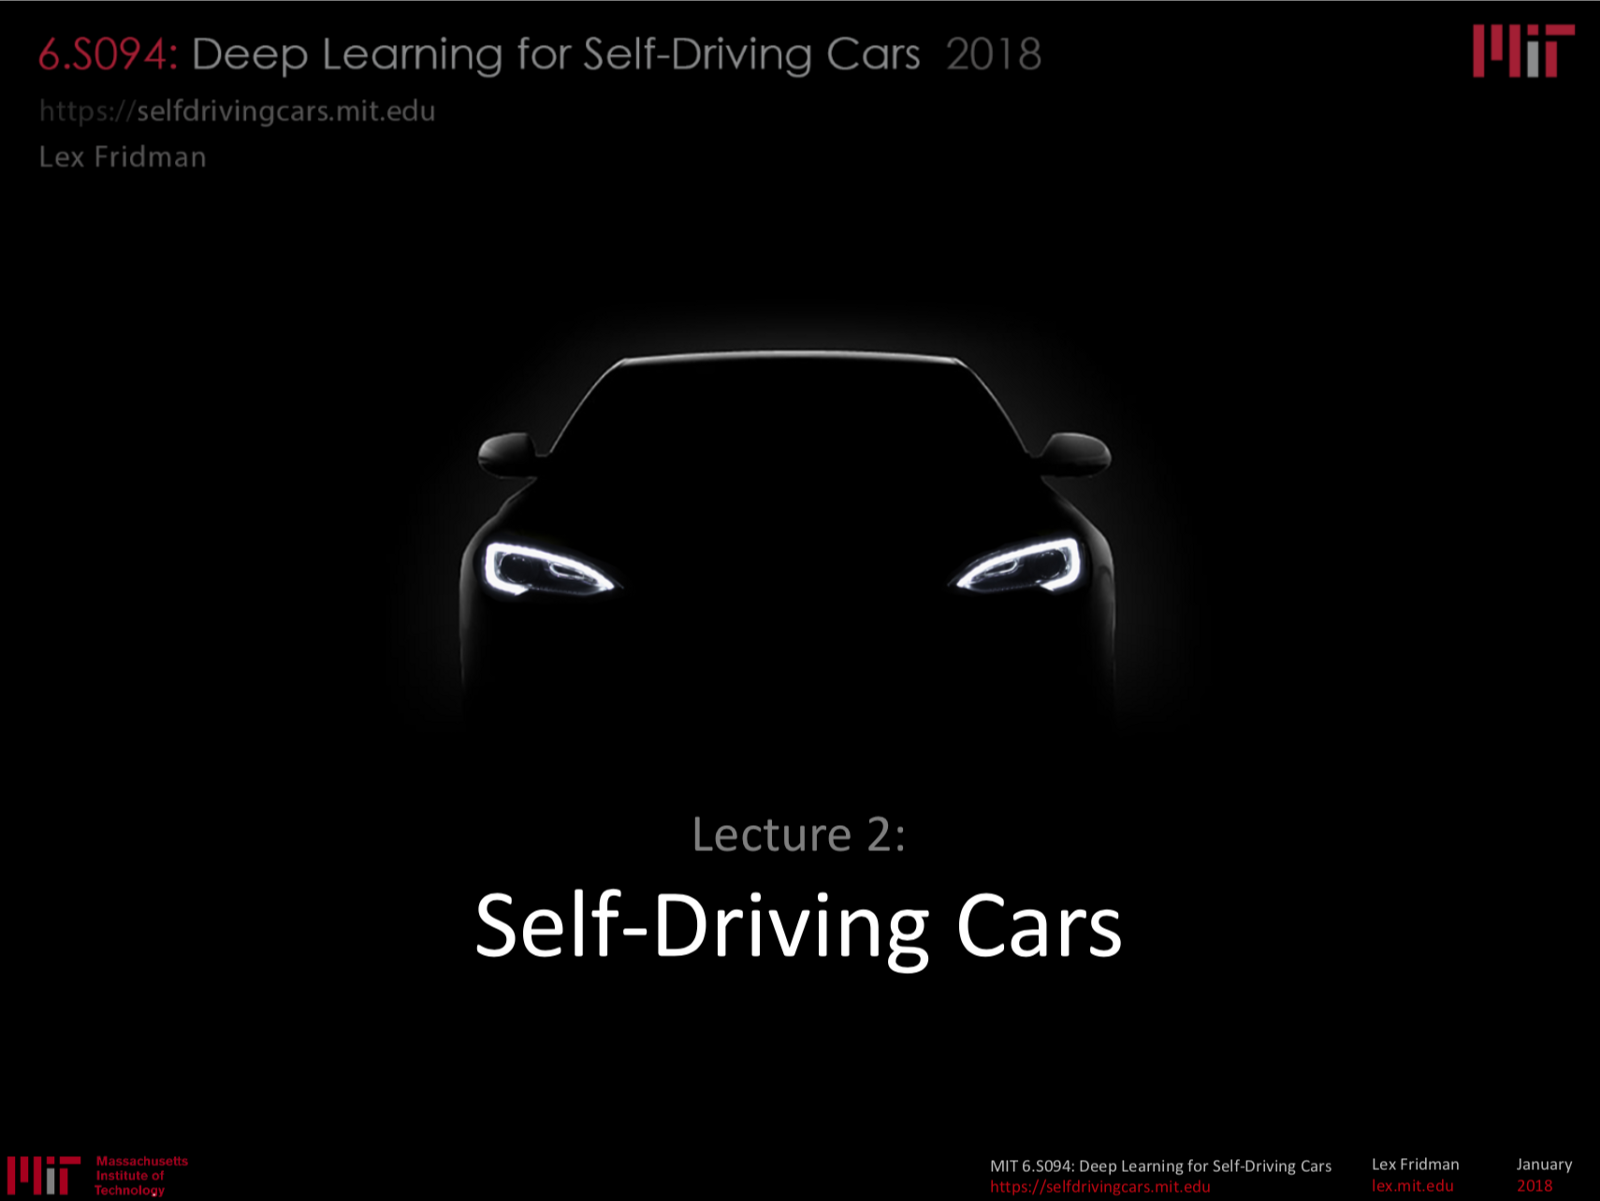 MIT 6 S094: Deep Learning for Self-Driving Cars 2018 Lecture